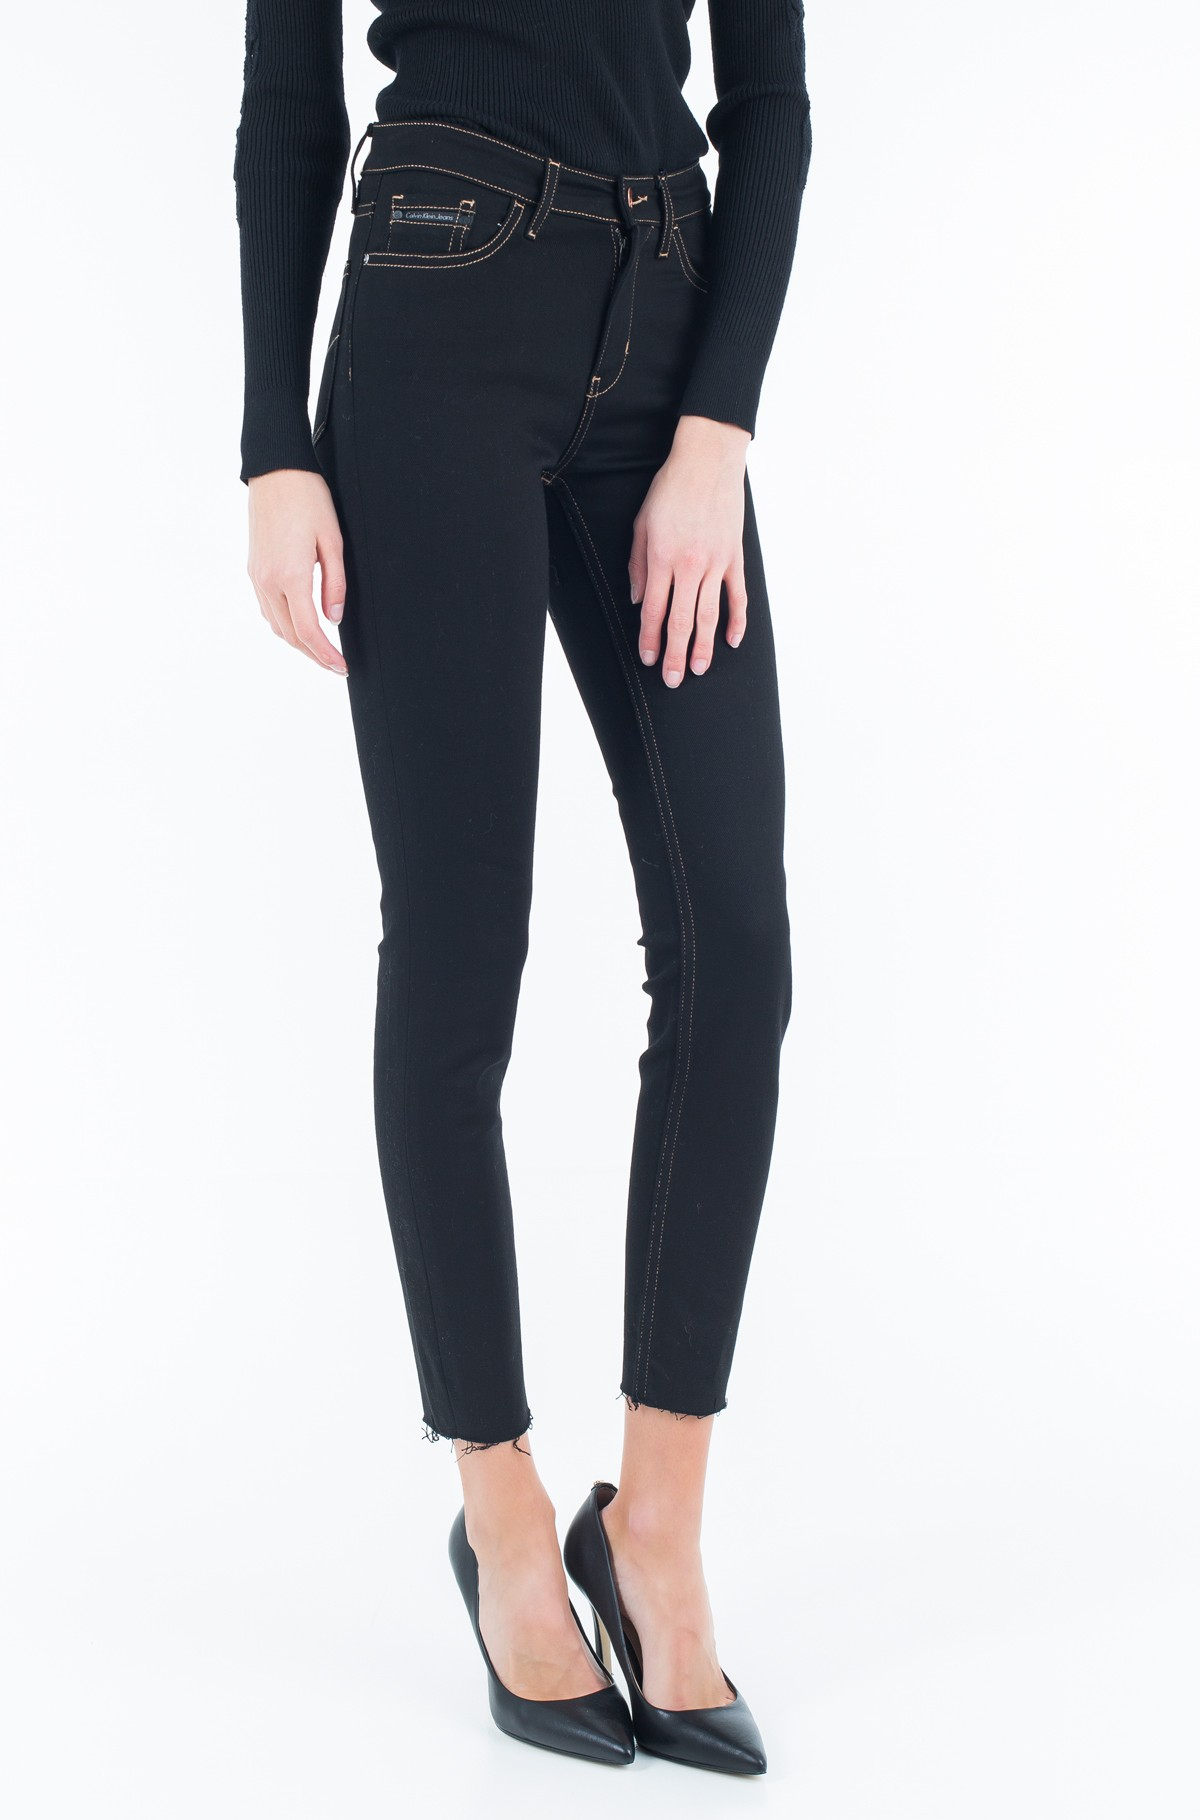 Jeans HR Skinny Ankle - Raw Black-full-1